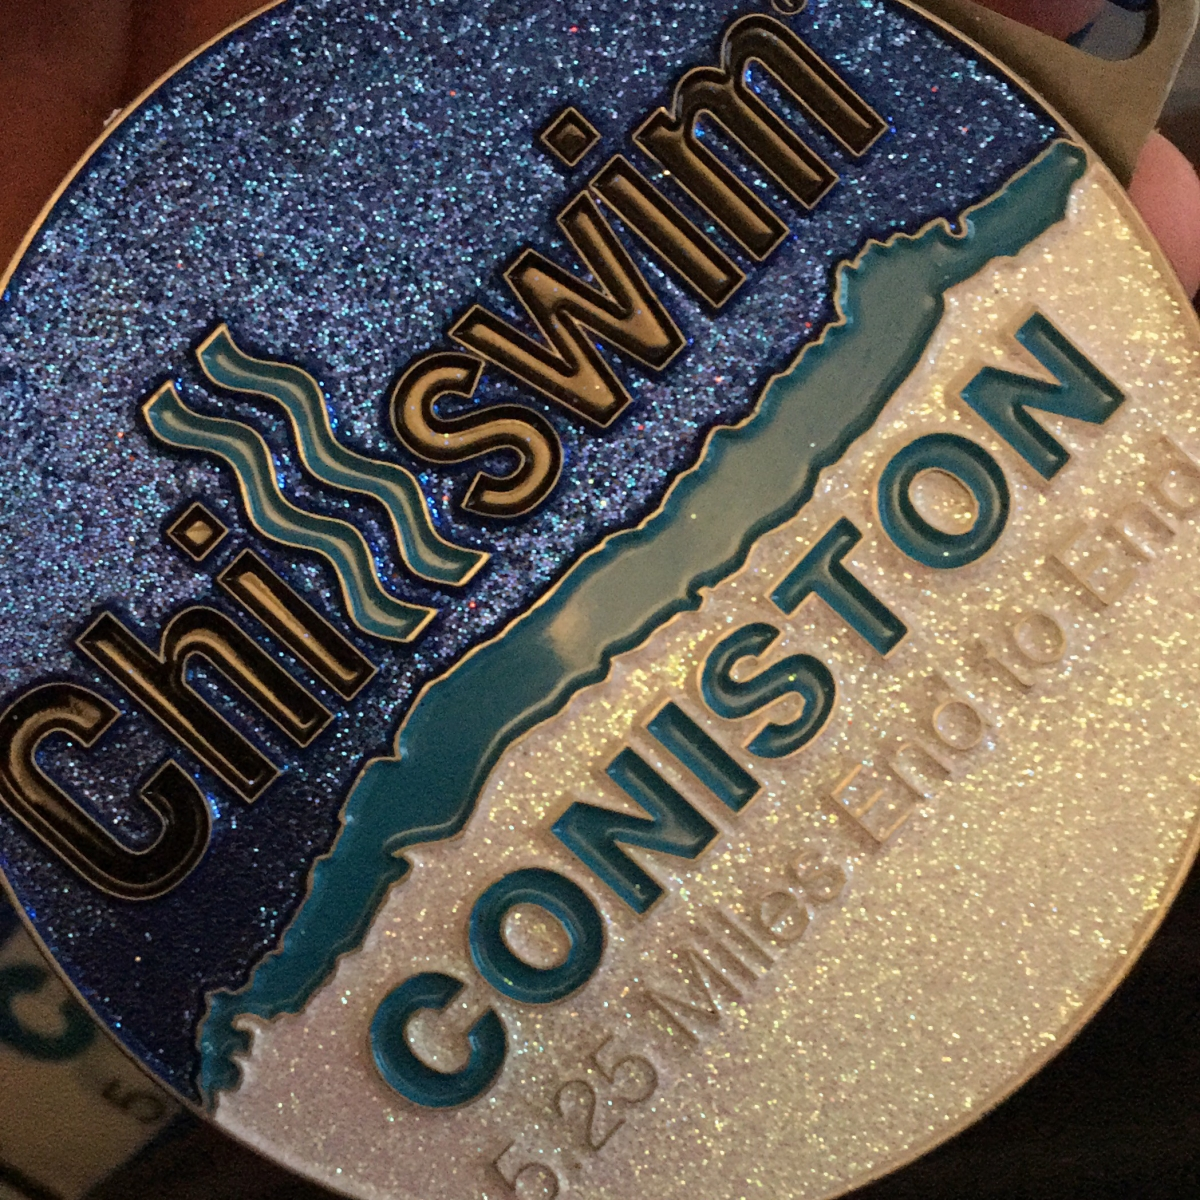 Chillswim Coniston End to End 5.25 miles